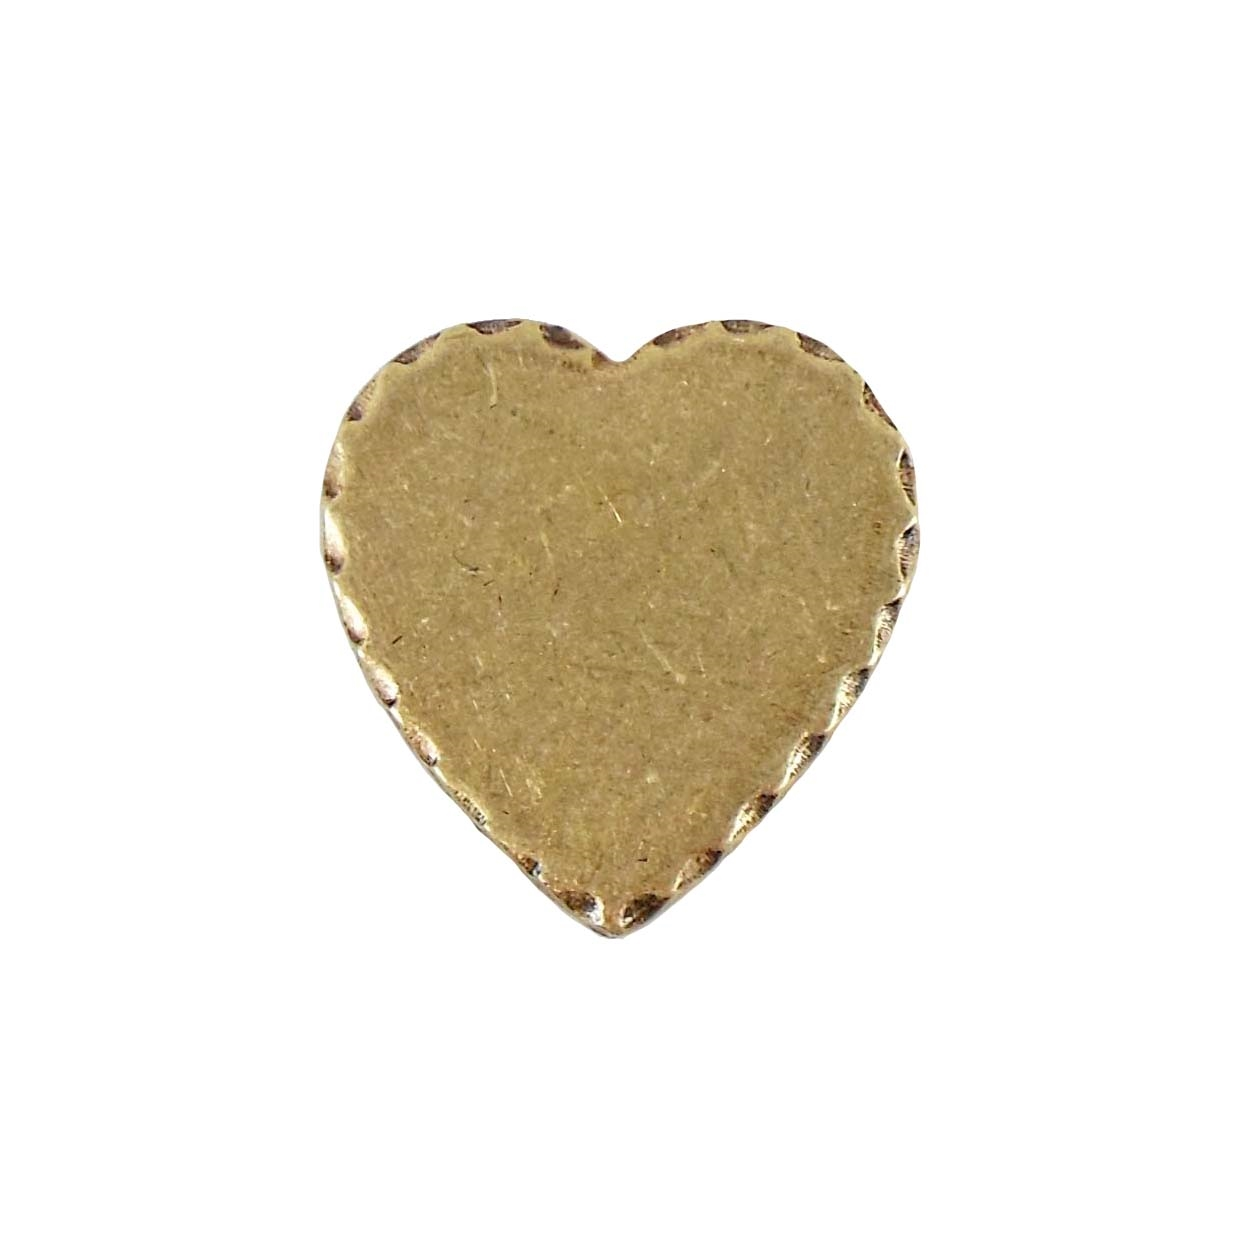 brass jewelry base, heart base, brass ox, 05098, drilled base, B'sue Boutiques, nickel free jewelry, US made jewelry, vintage jewellery supplies, jewelry making supplies, antique brass, brass blanks, heart jewelry blanks